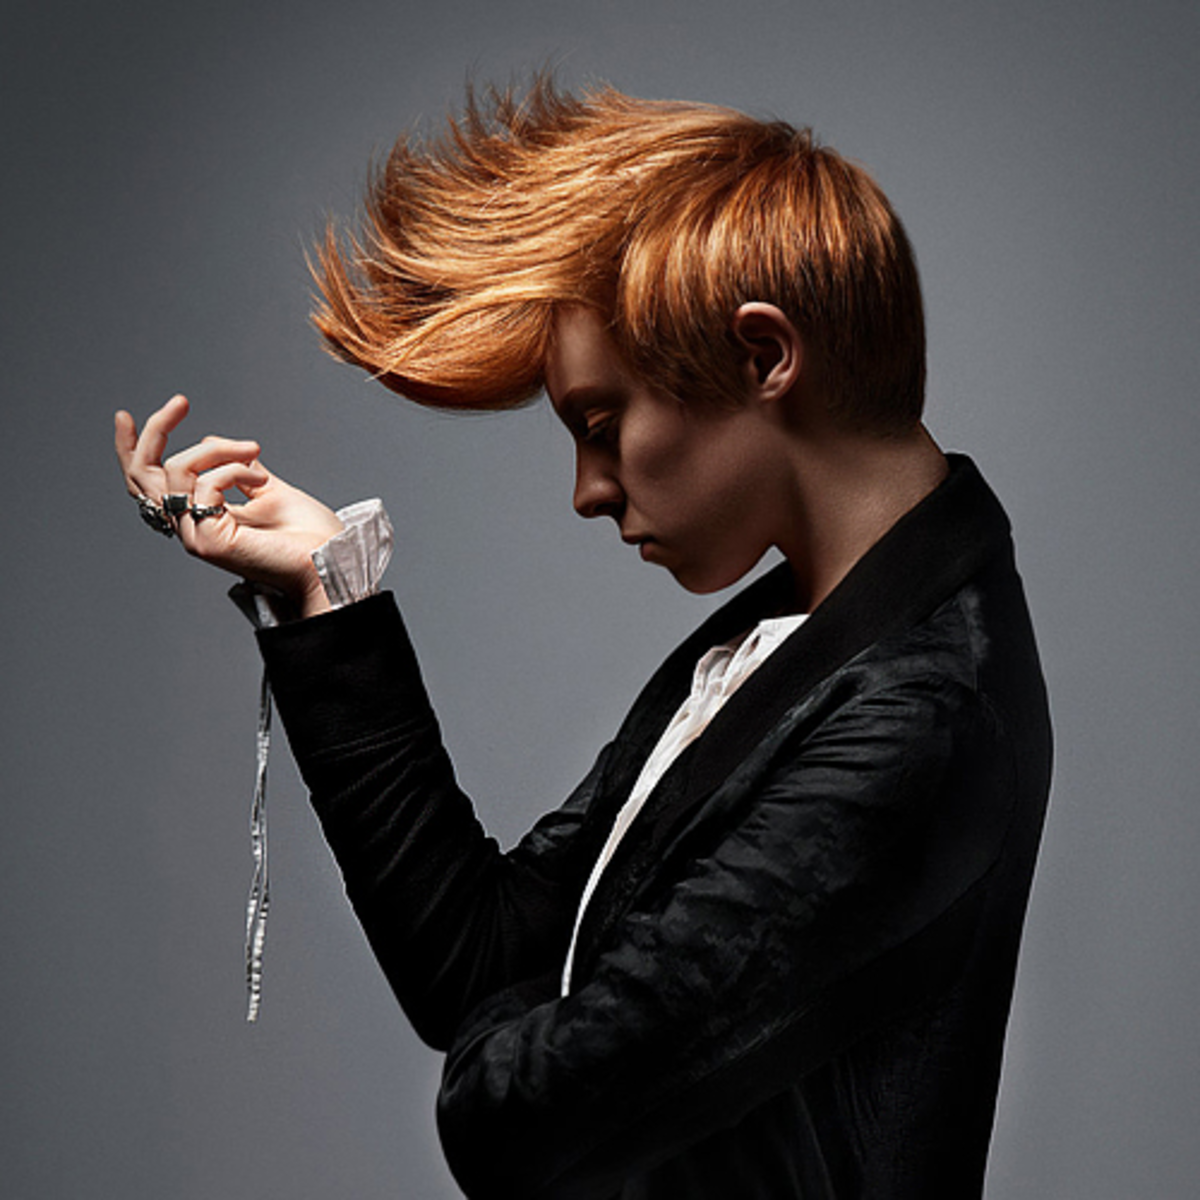 The lovely La Roux (Elly Jackson) with her larger-than-life quiff. *Heart eyes*